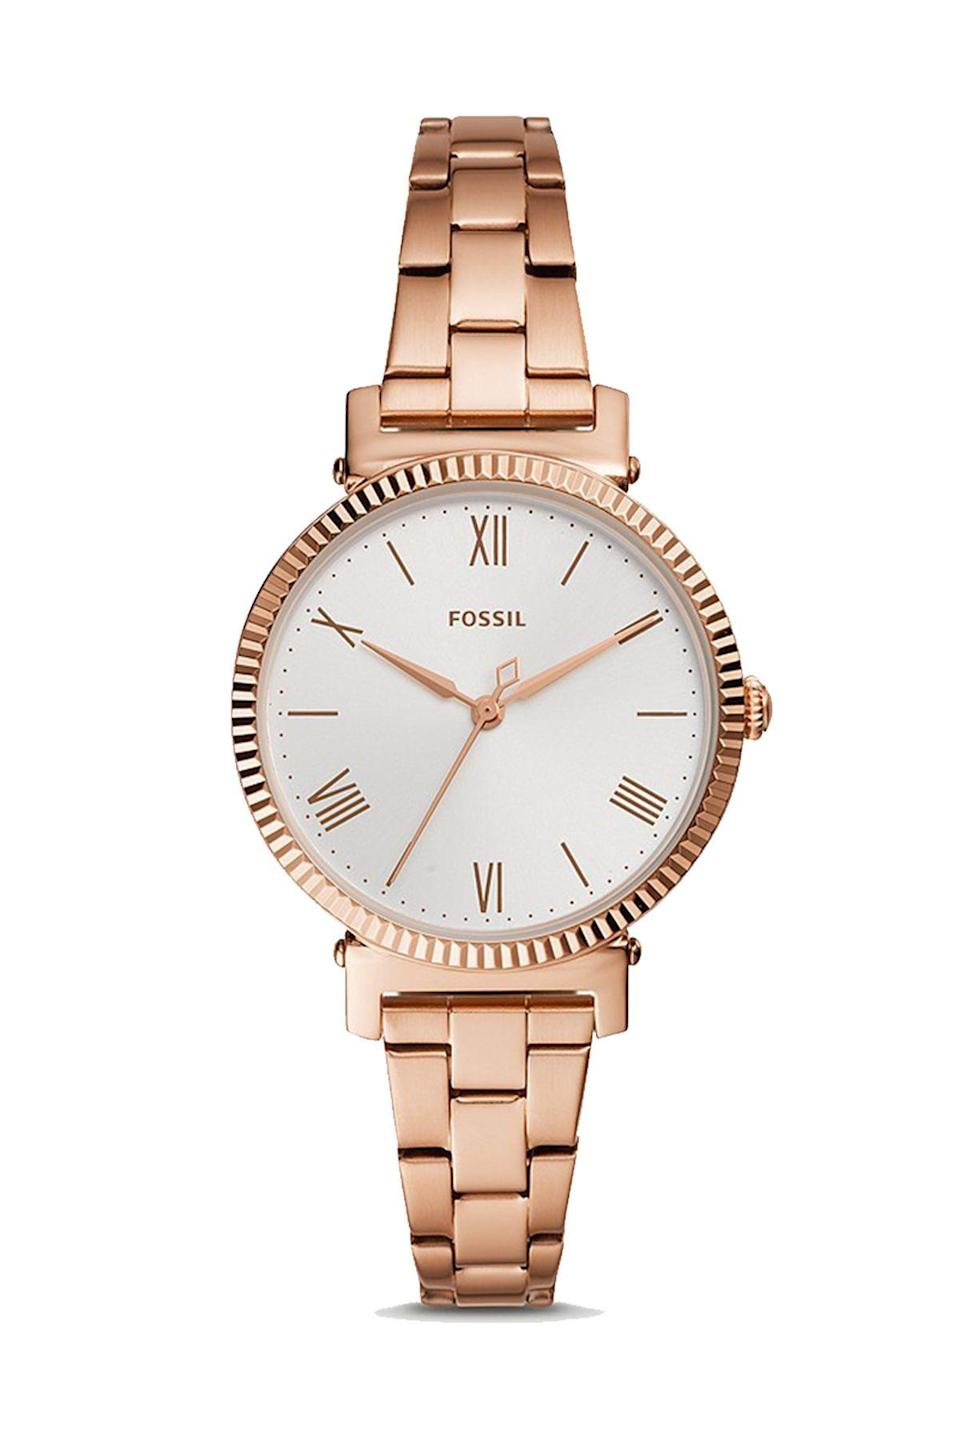 """<p><strong>Fossil</strong></p><p>fossil.com</p><p><strong>$119.00</strong></p><p><a href=""""https://go.redirectingat.com?id=74968X1596630&url=https%3A%2F%2Fwww.fossil.com%2Fen-us%2Fproducts%2Fdaisy-three-hand-rose-gold-tone-stainless-steel-watch%2FES4791.html&sref=https%3A%2F%2Fwww.townandcountrymag.com%2Fstyle%2Fjewelry-and-watches%2Fg36186288%2Fbest-rose-gold-watches-women%2F"""" rel=""""nofollow noopener"""" target=""""_blank"""" data-ylk=""""slk:Shop Now"""" class=""""link rapid-noclick-resp"""">Shop Now</a></p><p>A statement oversized watch face is complemented by a thinner metal watchband. </p>"""